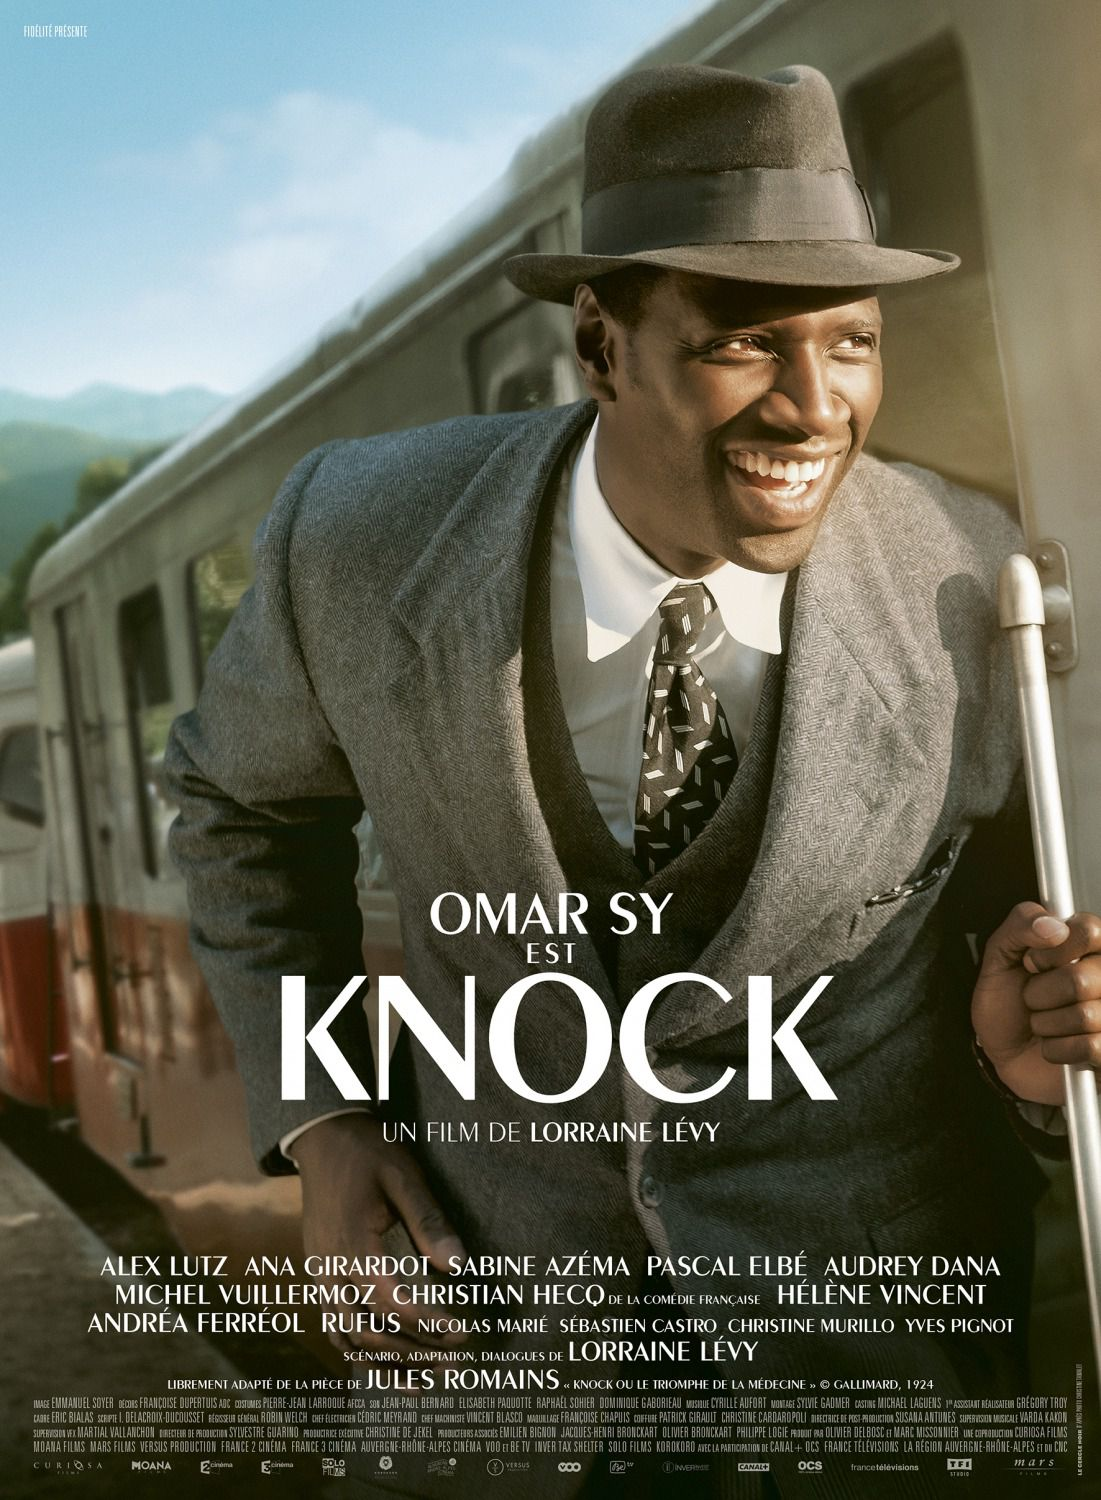 Knock - film poster - Omar Sy